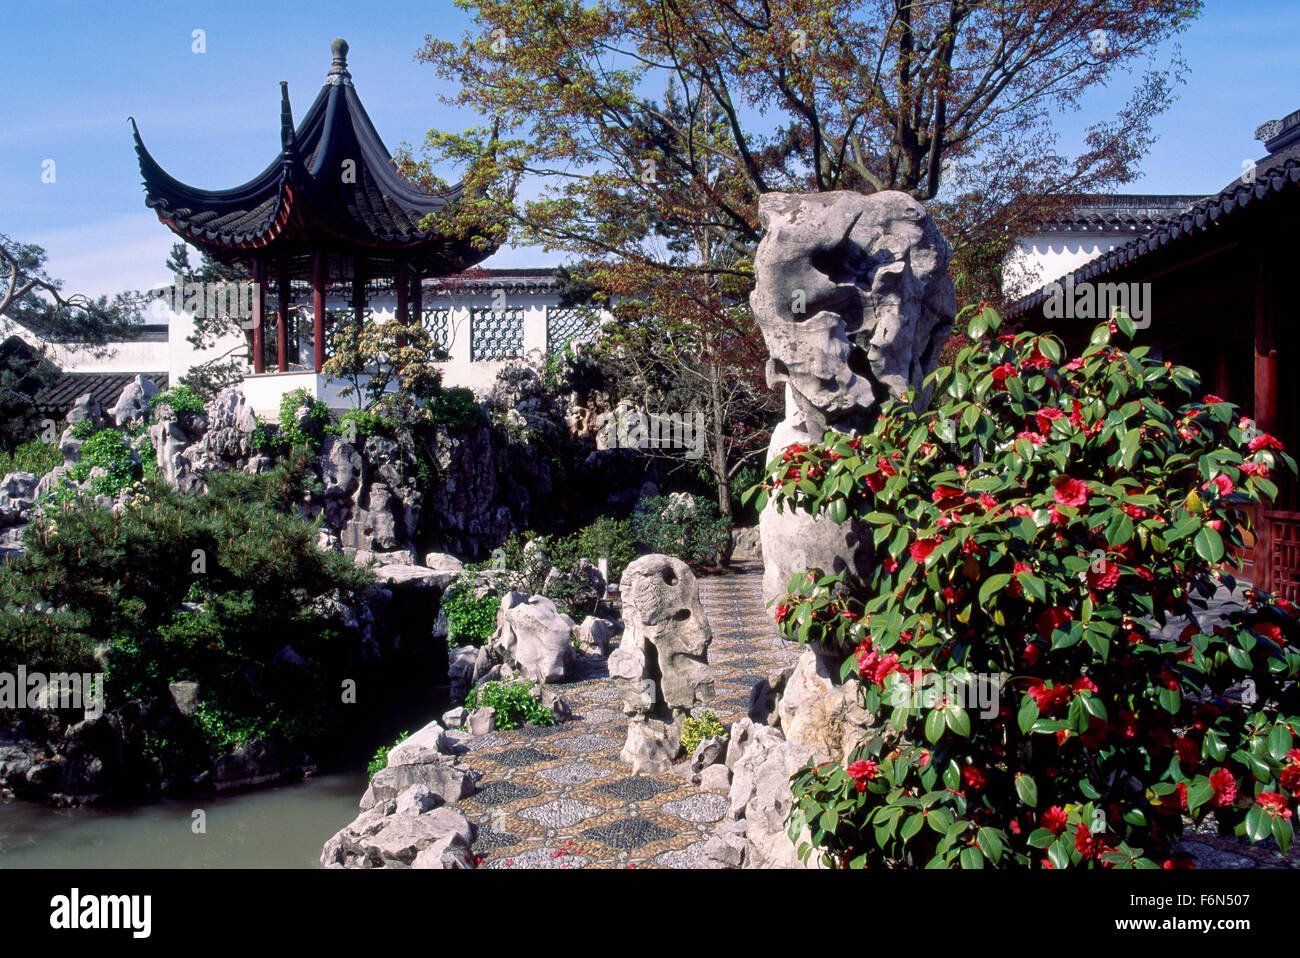 Beautiful Dr. Sun Yat Sen Classical Chinese Garden In Chinatown, Vancouver, BC,